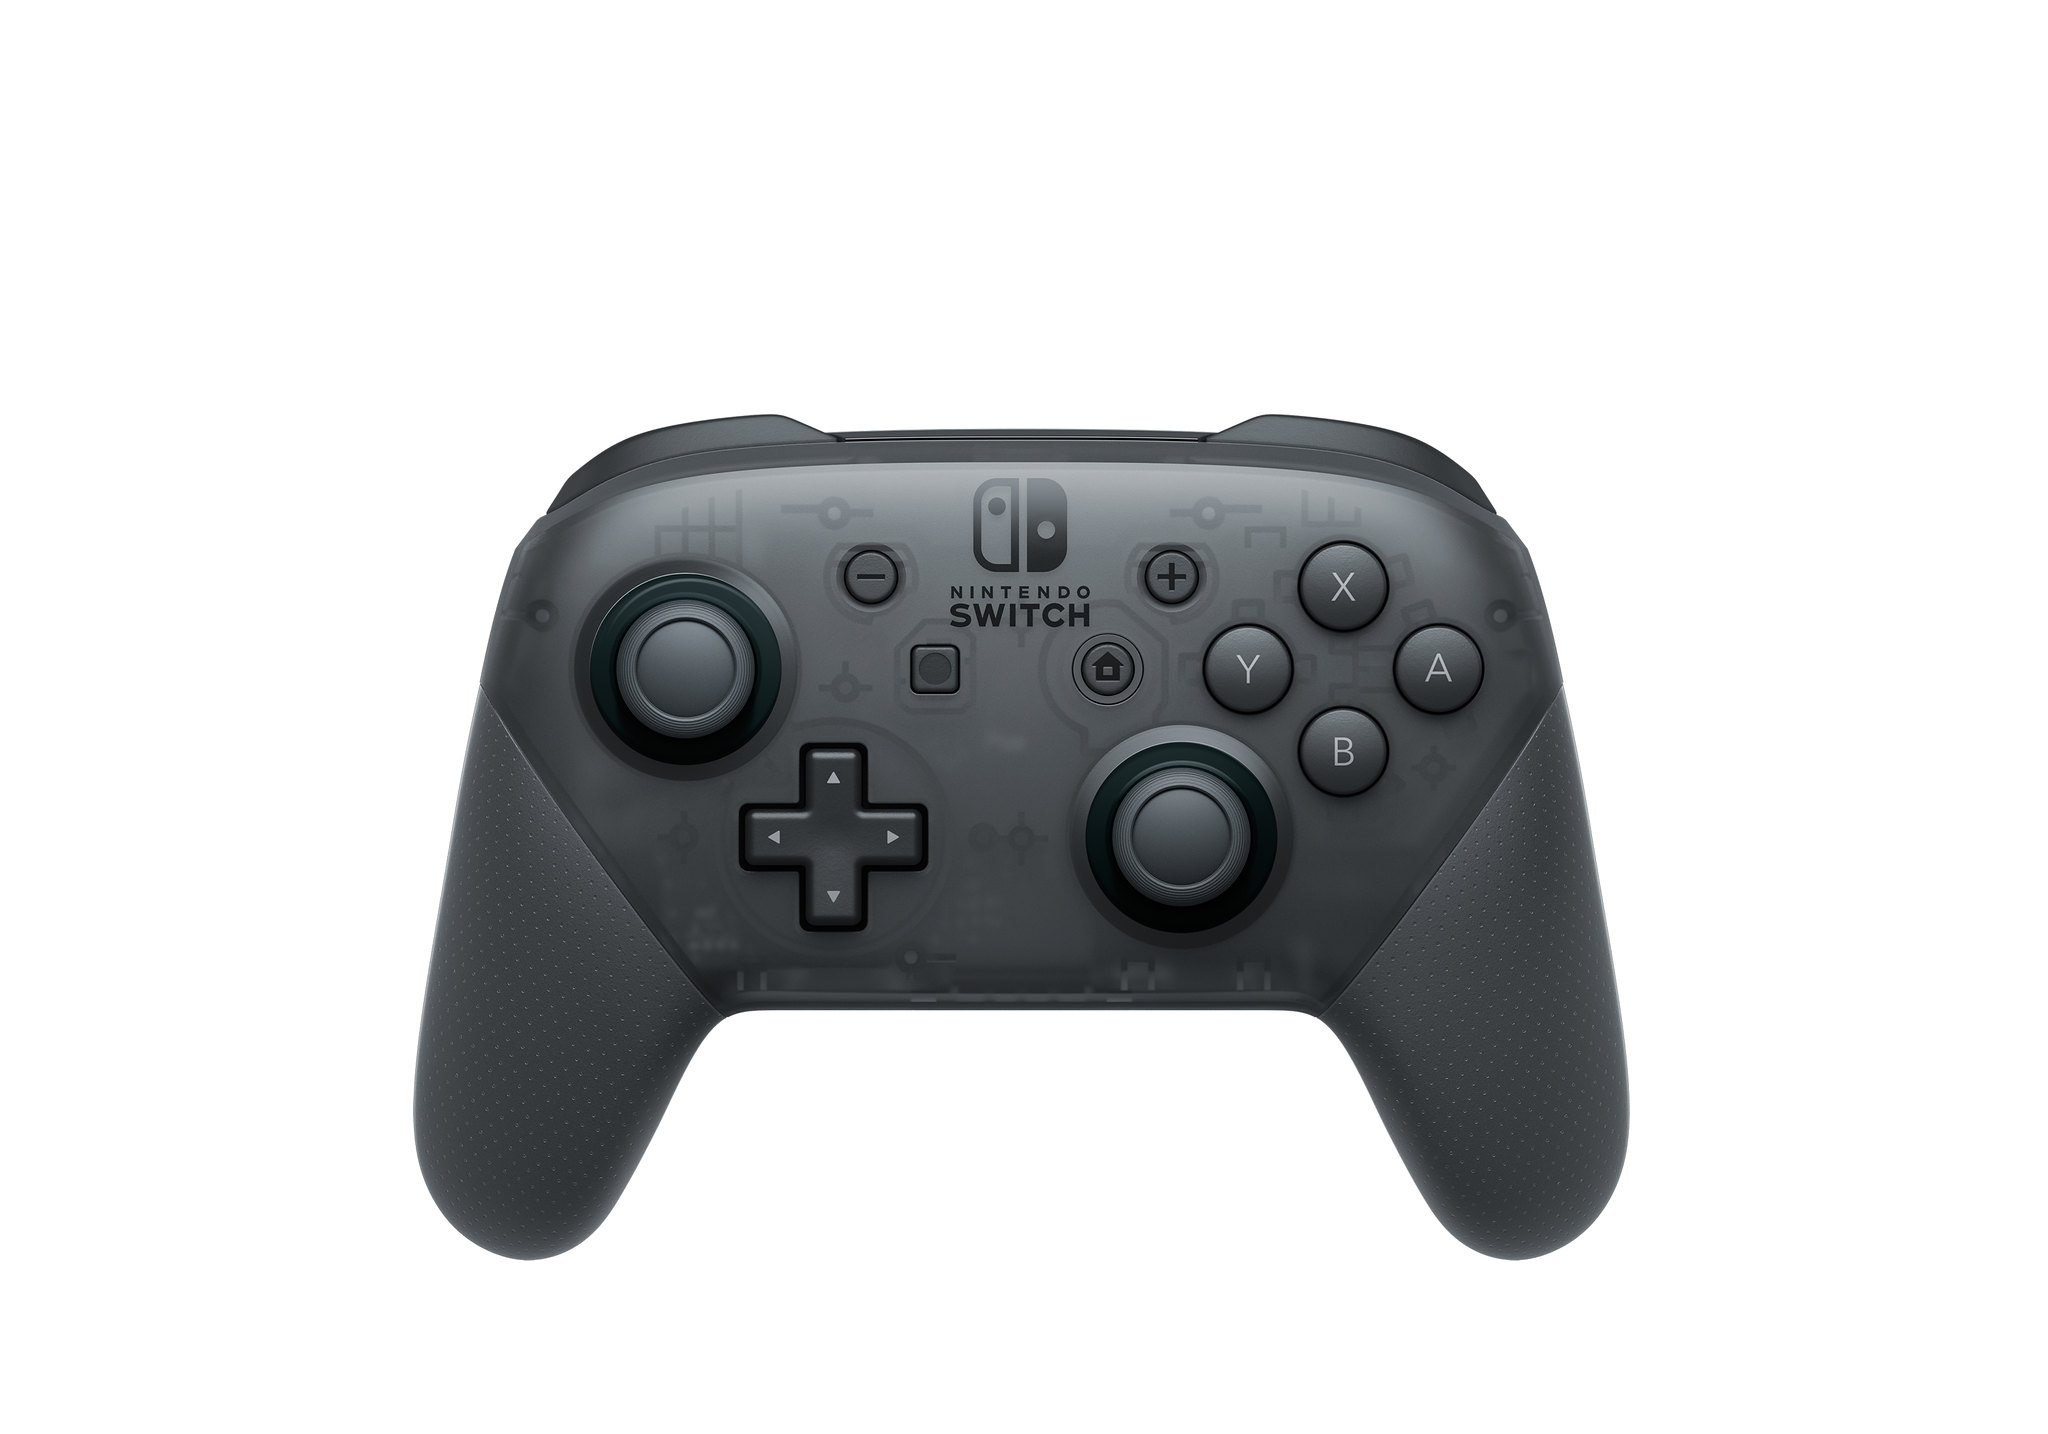 Nintendo's Excellent Designs Grace Latest Third-Party Controllers That Are More Affordable